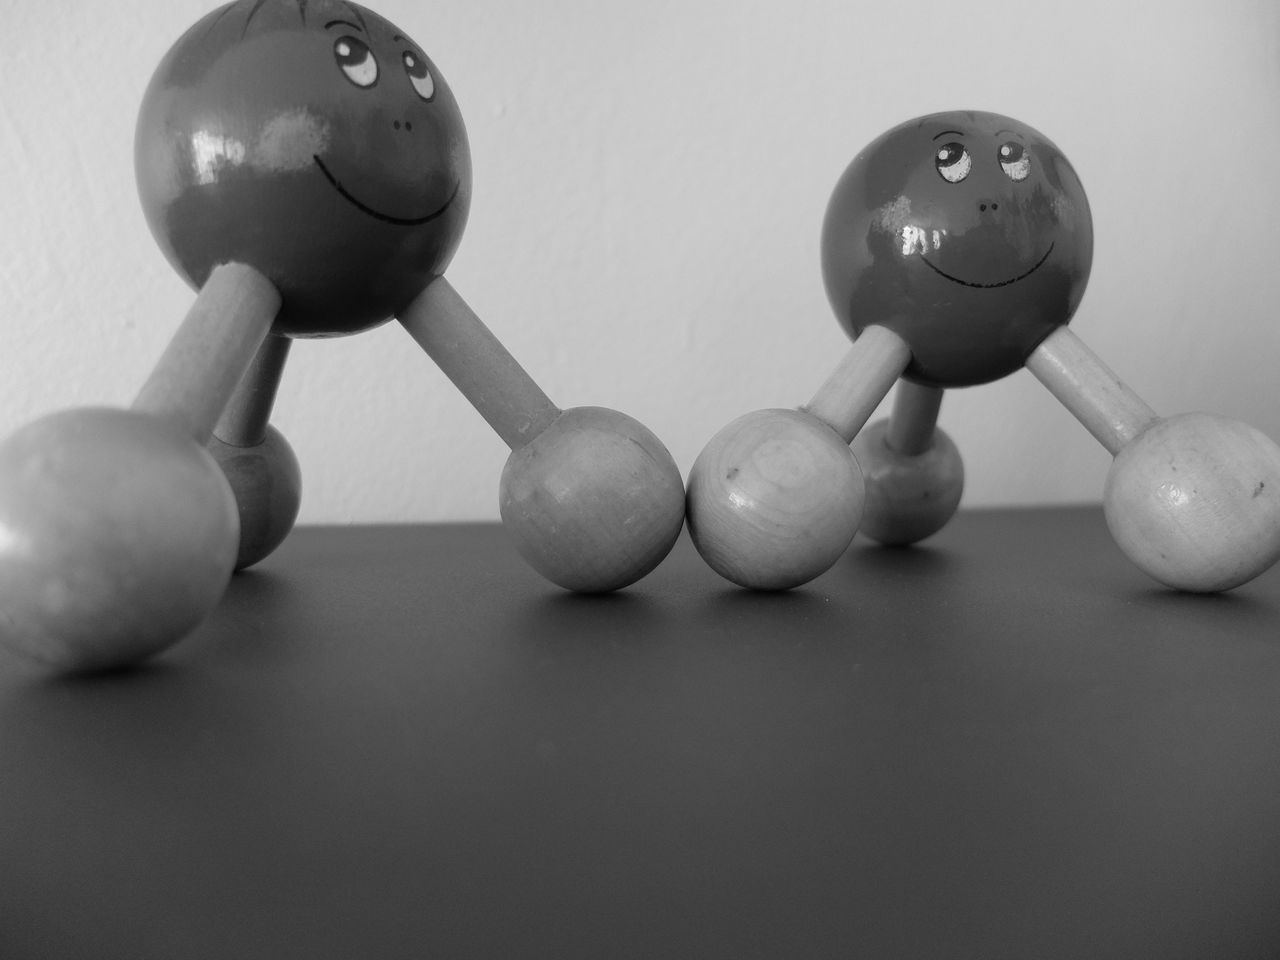 Close-Up Of Atom Toys On Table